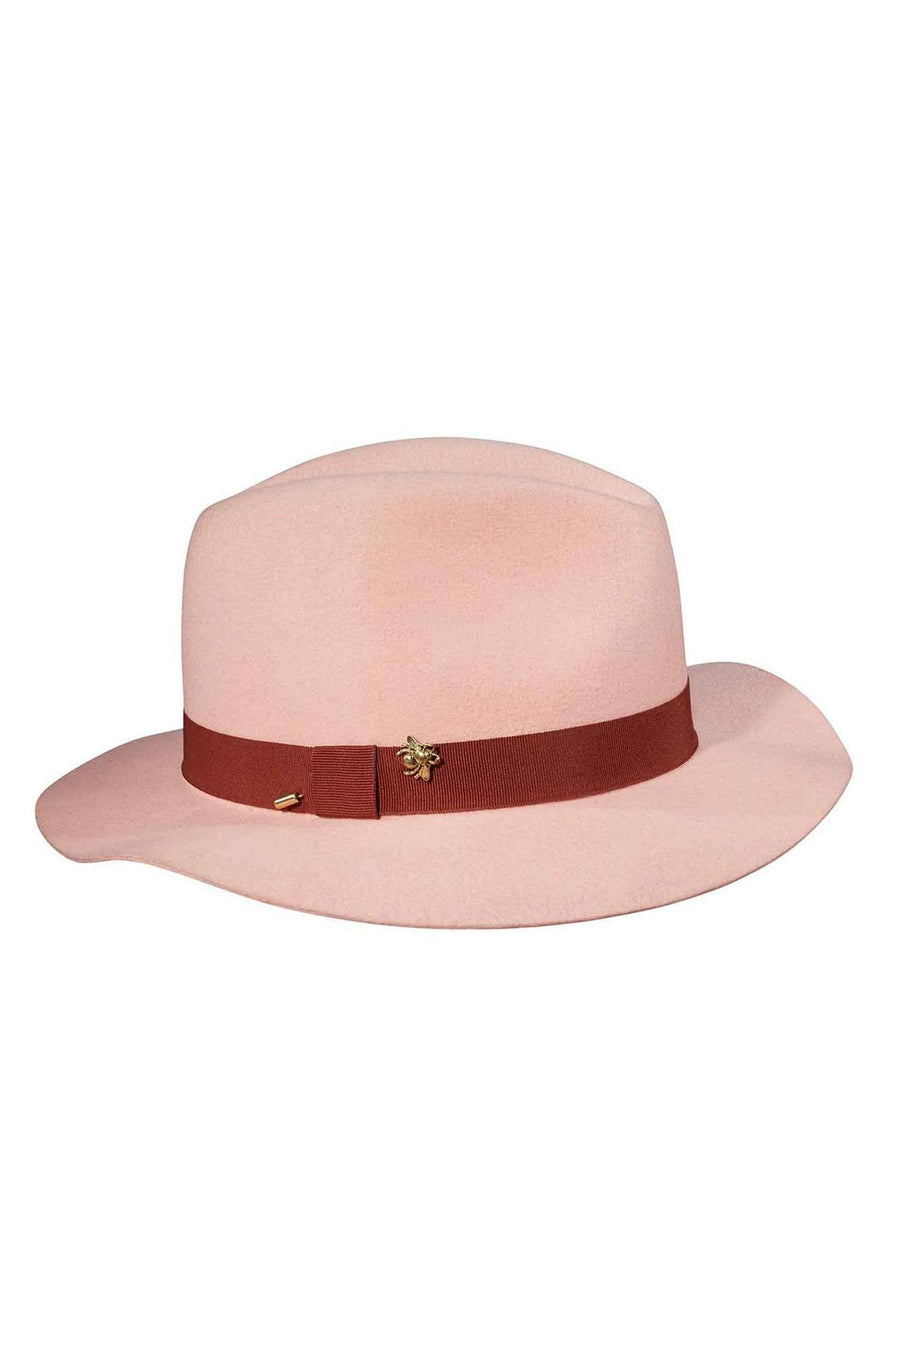 wool-hat-in-blossom-by-maison-scotch